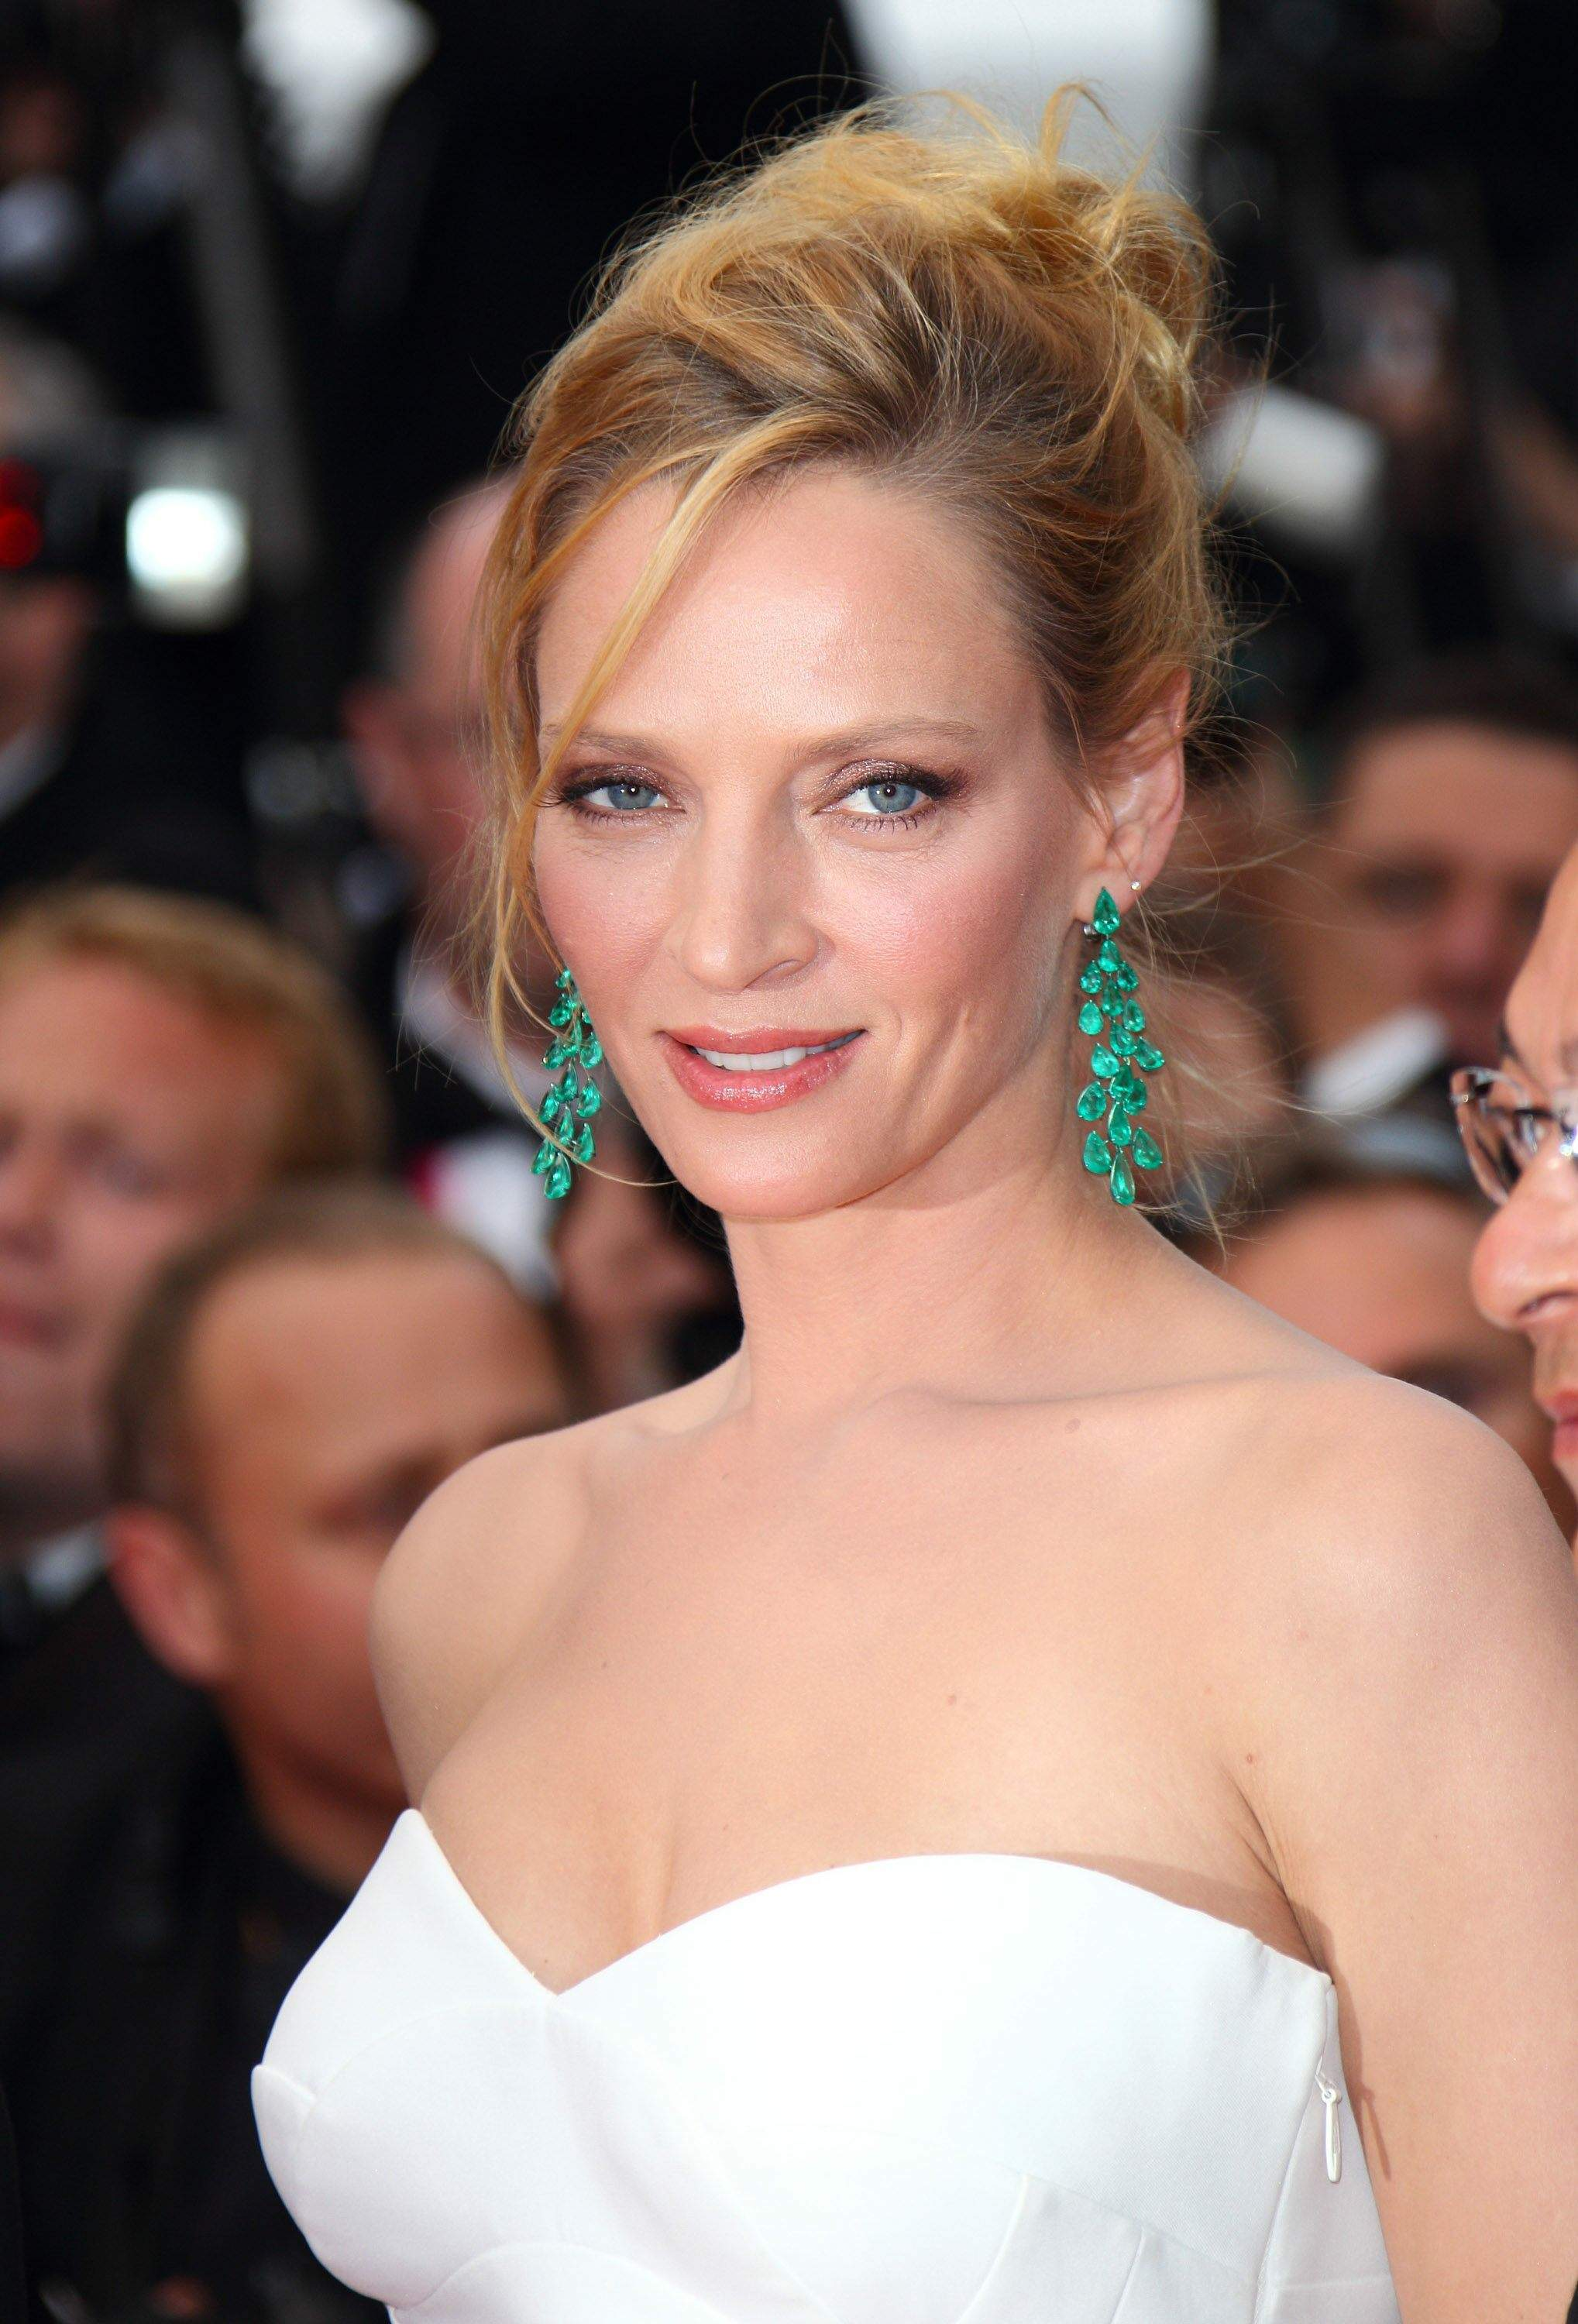 This Is Why Uma Thurman Is Angry - The New York Times